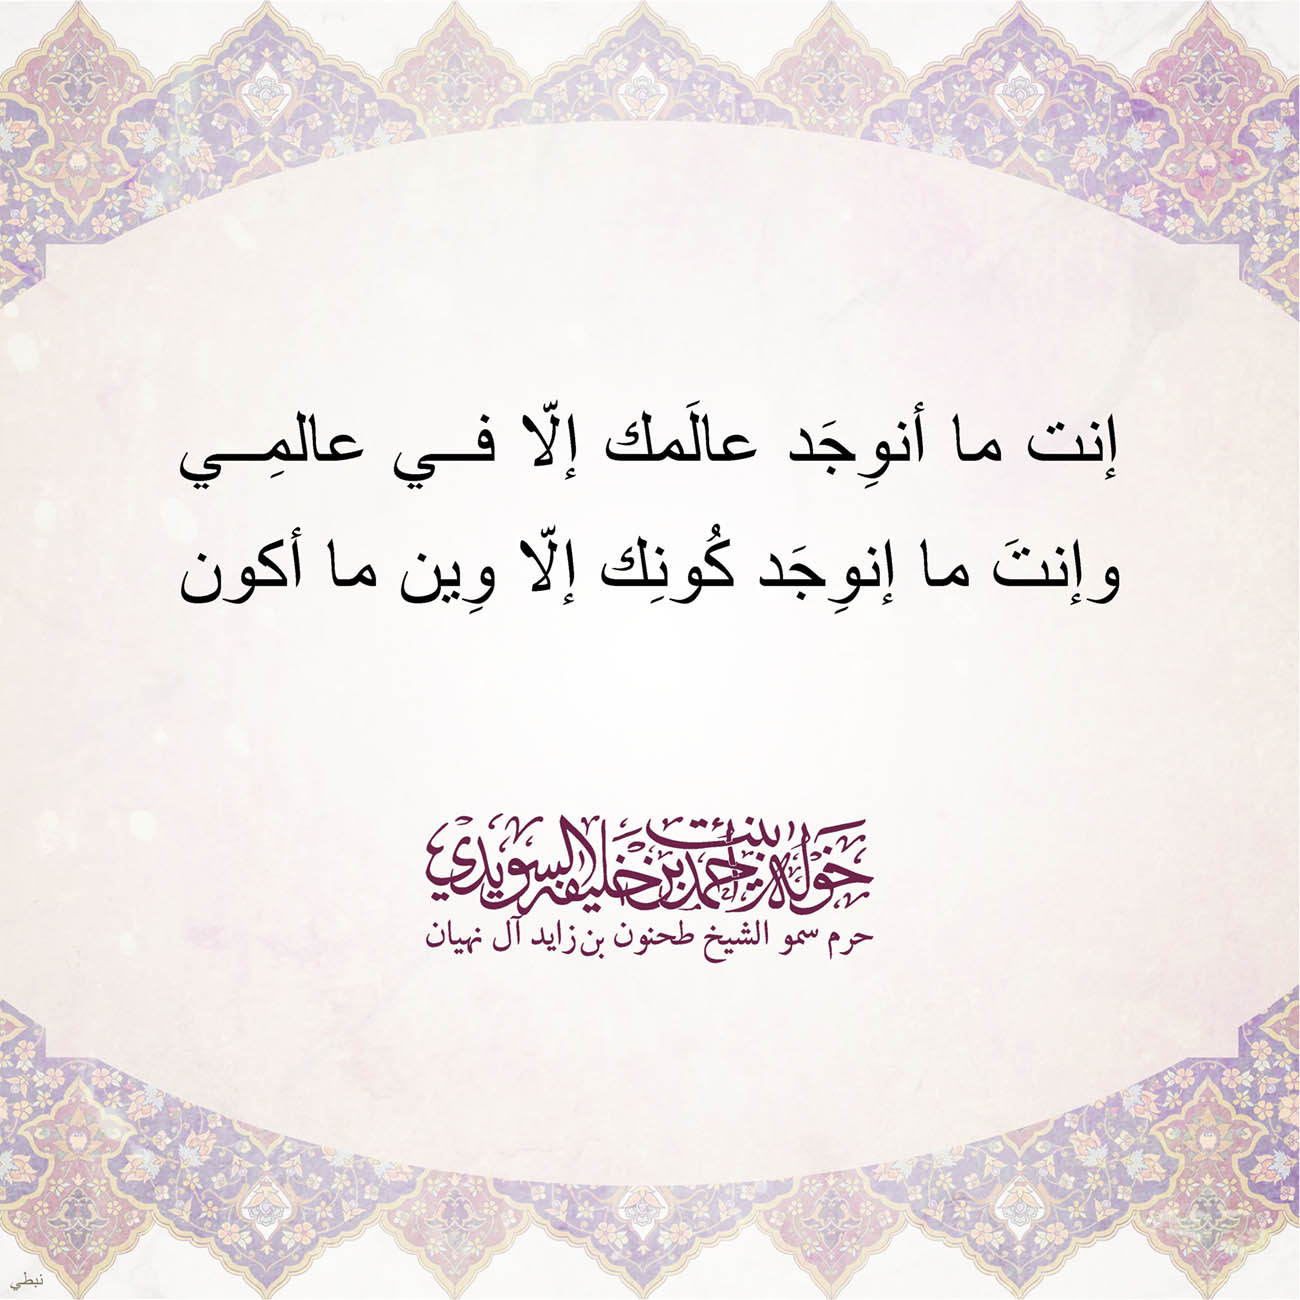 إنت ما أنوِجَد عالَمك إلّا في عالمِي